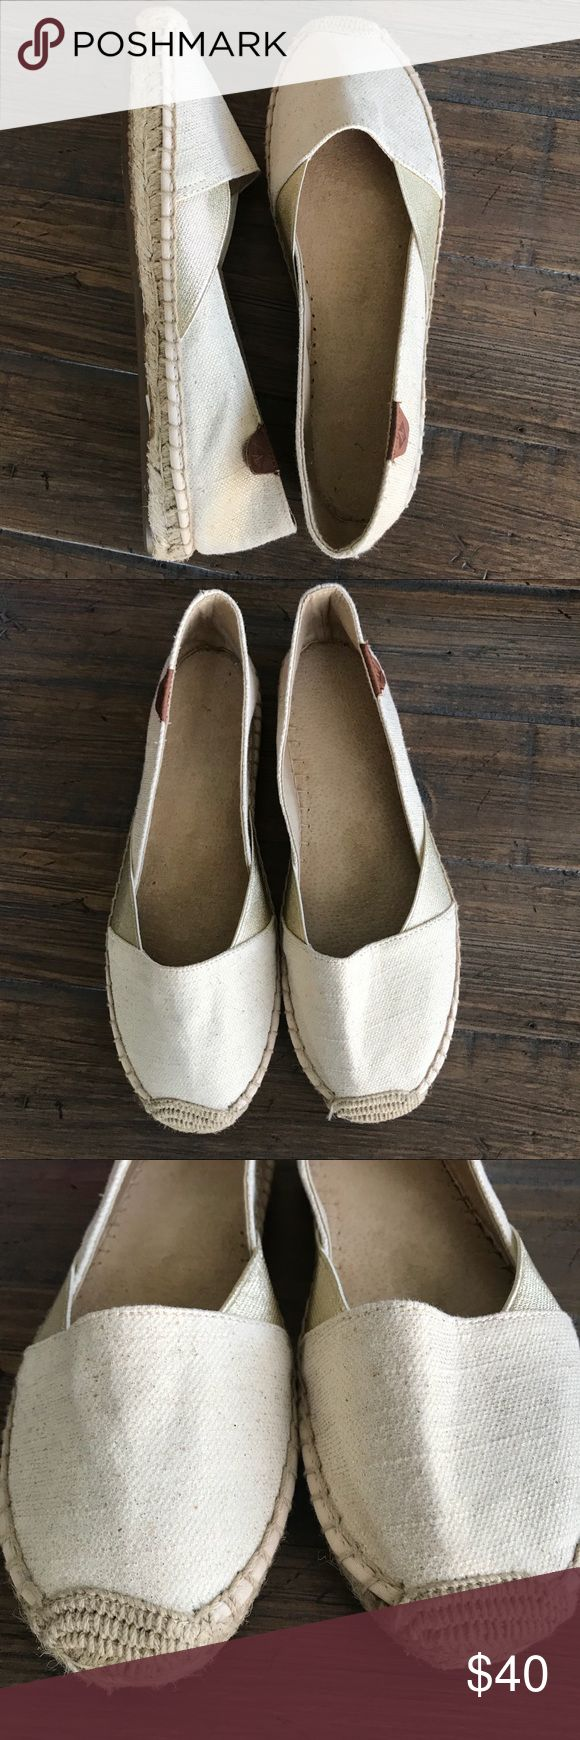 Sperry Katma Cape Gold Metallic Espadrille shoes Women's Sperry Katma Cape Gold Espadrille shoes, size 9. They do not come with a box. They haven't been worn, just tried on. Style number is STS95780 Gold. They are canvas on top, with tan and cream colors and gold metallic. The stretch material on the middle sides is gold elastic. Lightly padded leather insoles, rubber sole great for wet surfaces. Brown Sperry label tag on the back outer part of each shoe. Sperry Top-Sider Shoes Espadrilles